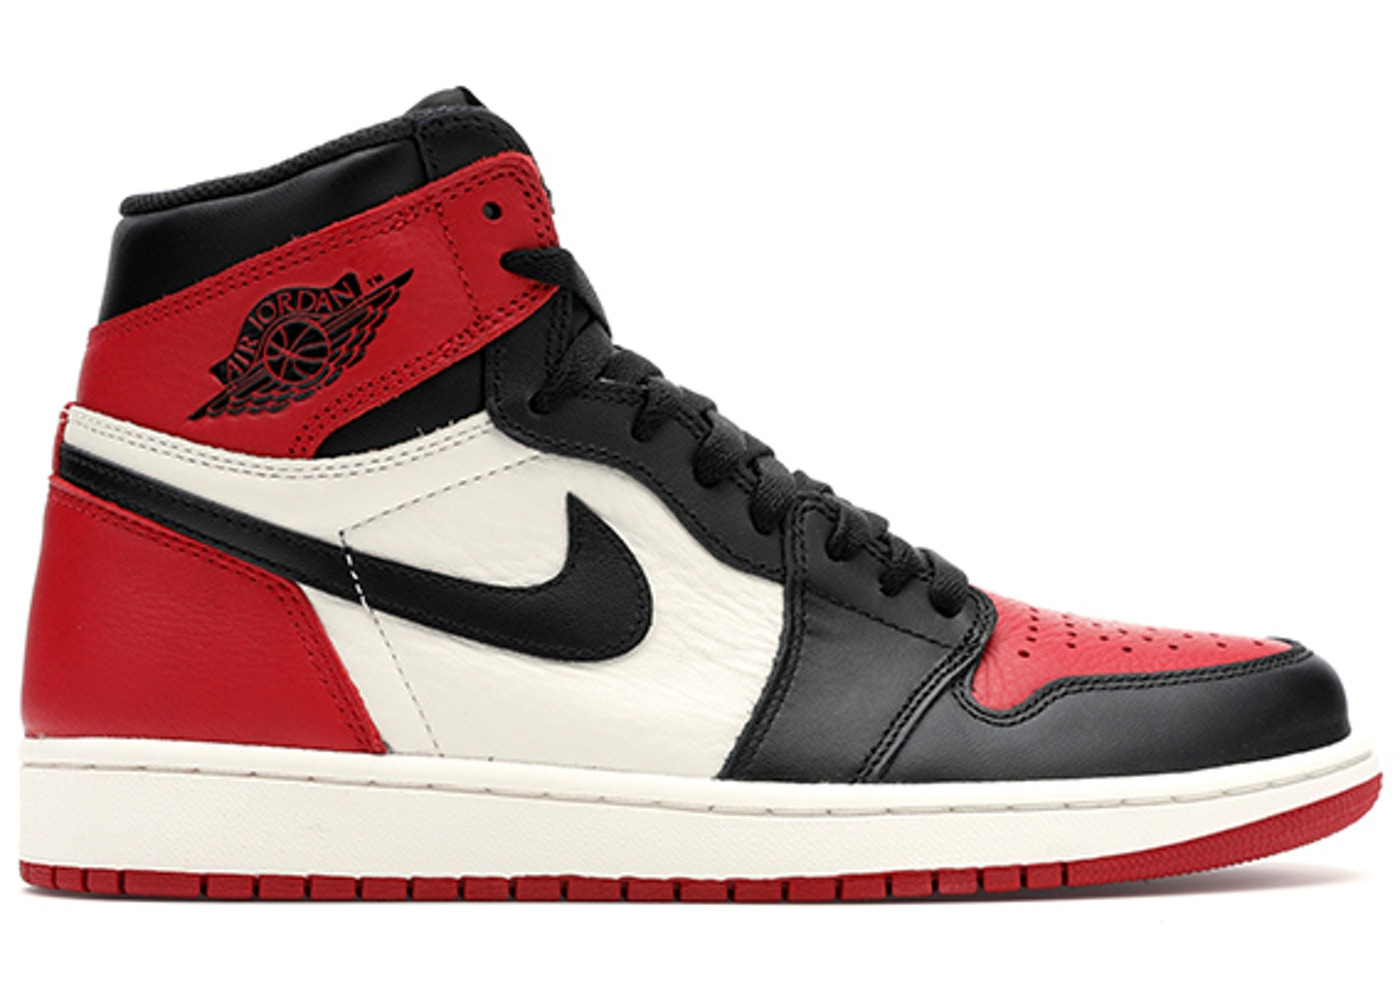 buy popular 7e960 c6cd5 Jordan 1 Retro High Bred Toe - 555088-610